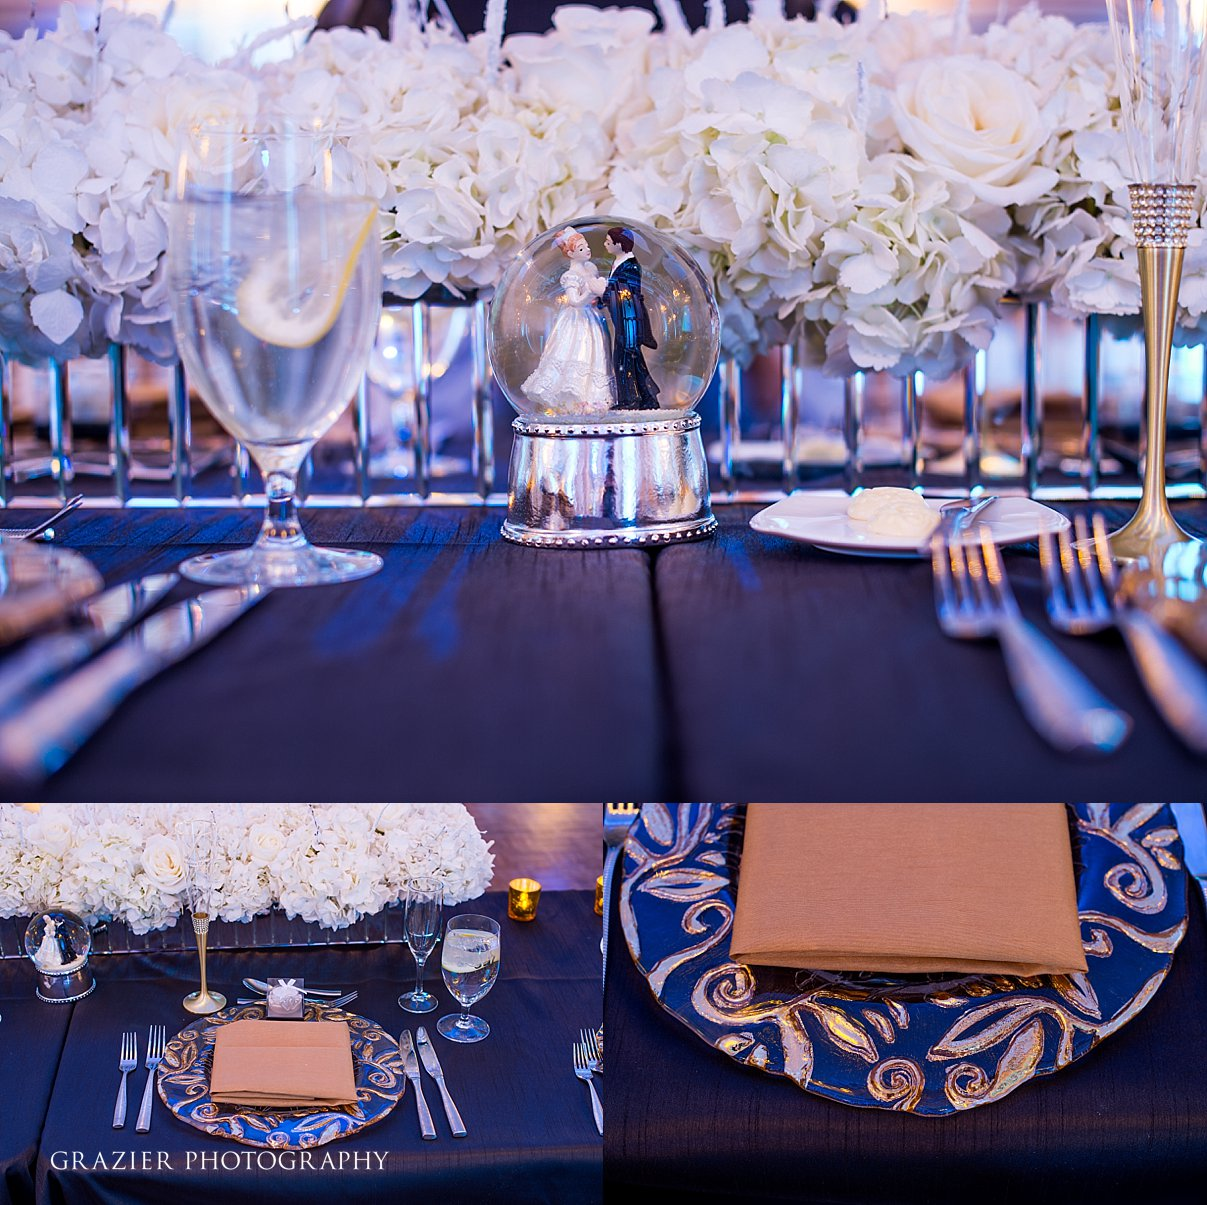 Grazier_Photography_Fairmont_Copley_Boston_Wedding_2016_050.JPG